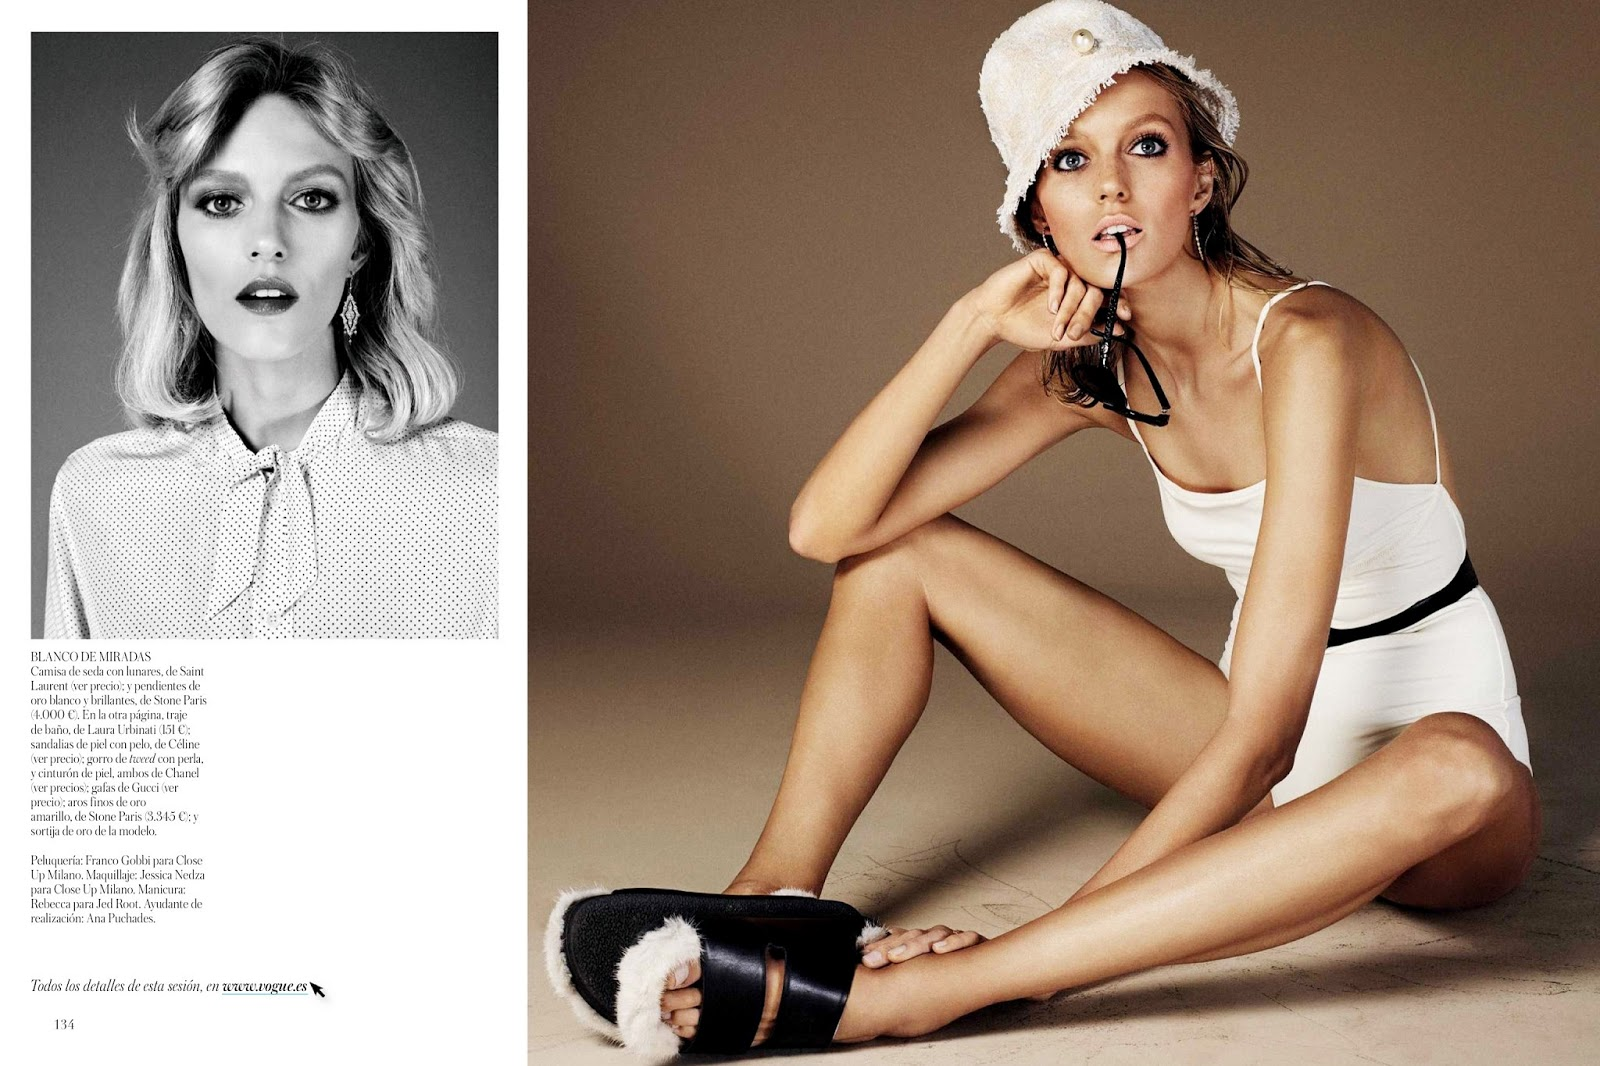 fashion_scans_remastered-anja_rubik-vogue_espana-june_2013-scanned_by_vampirehorde-hq-13.jpg